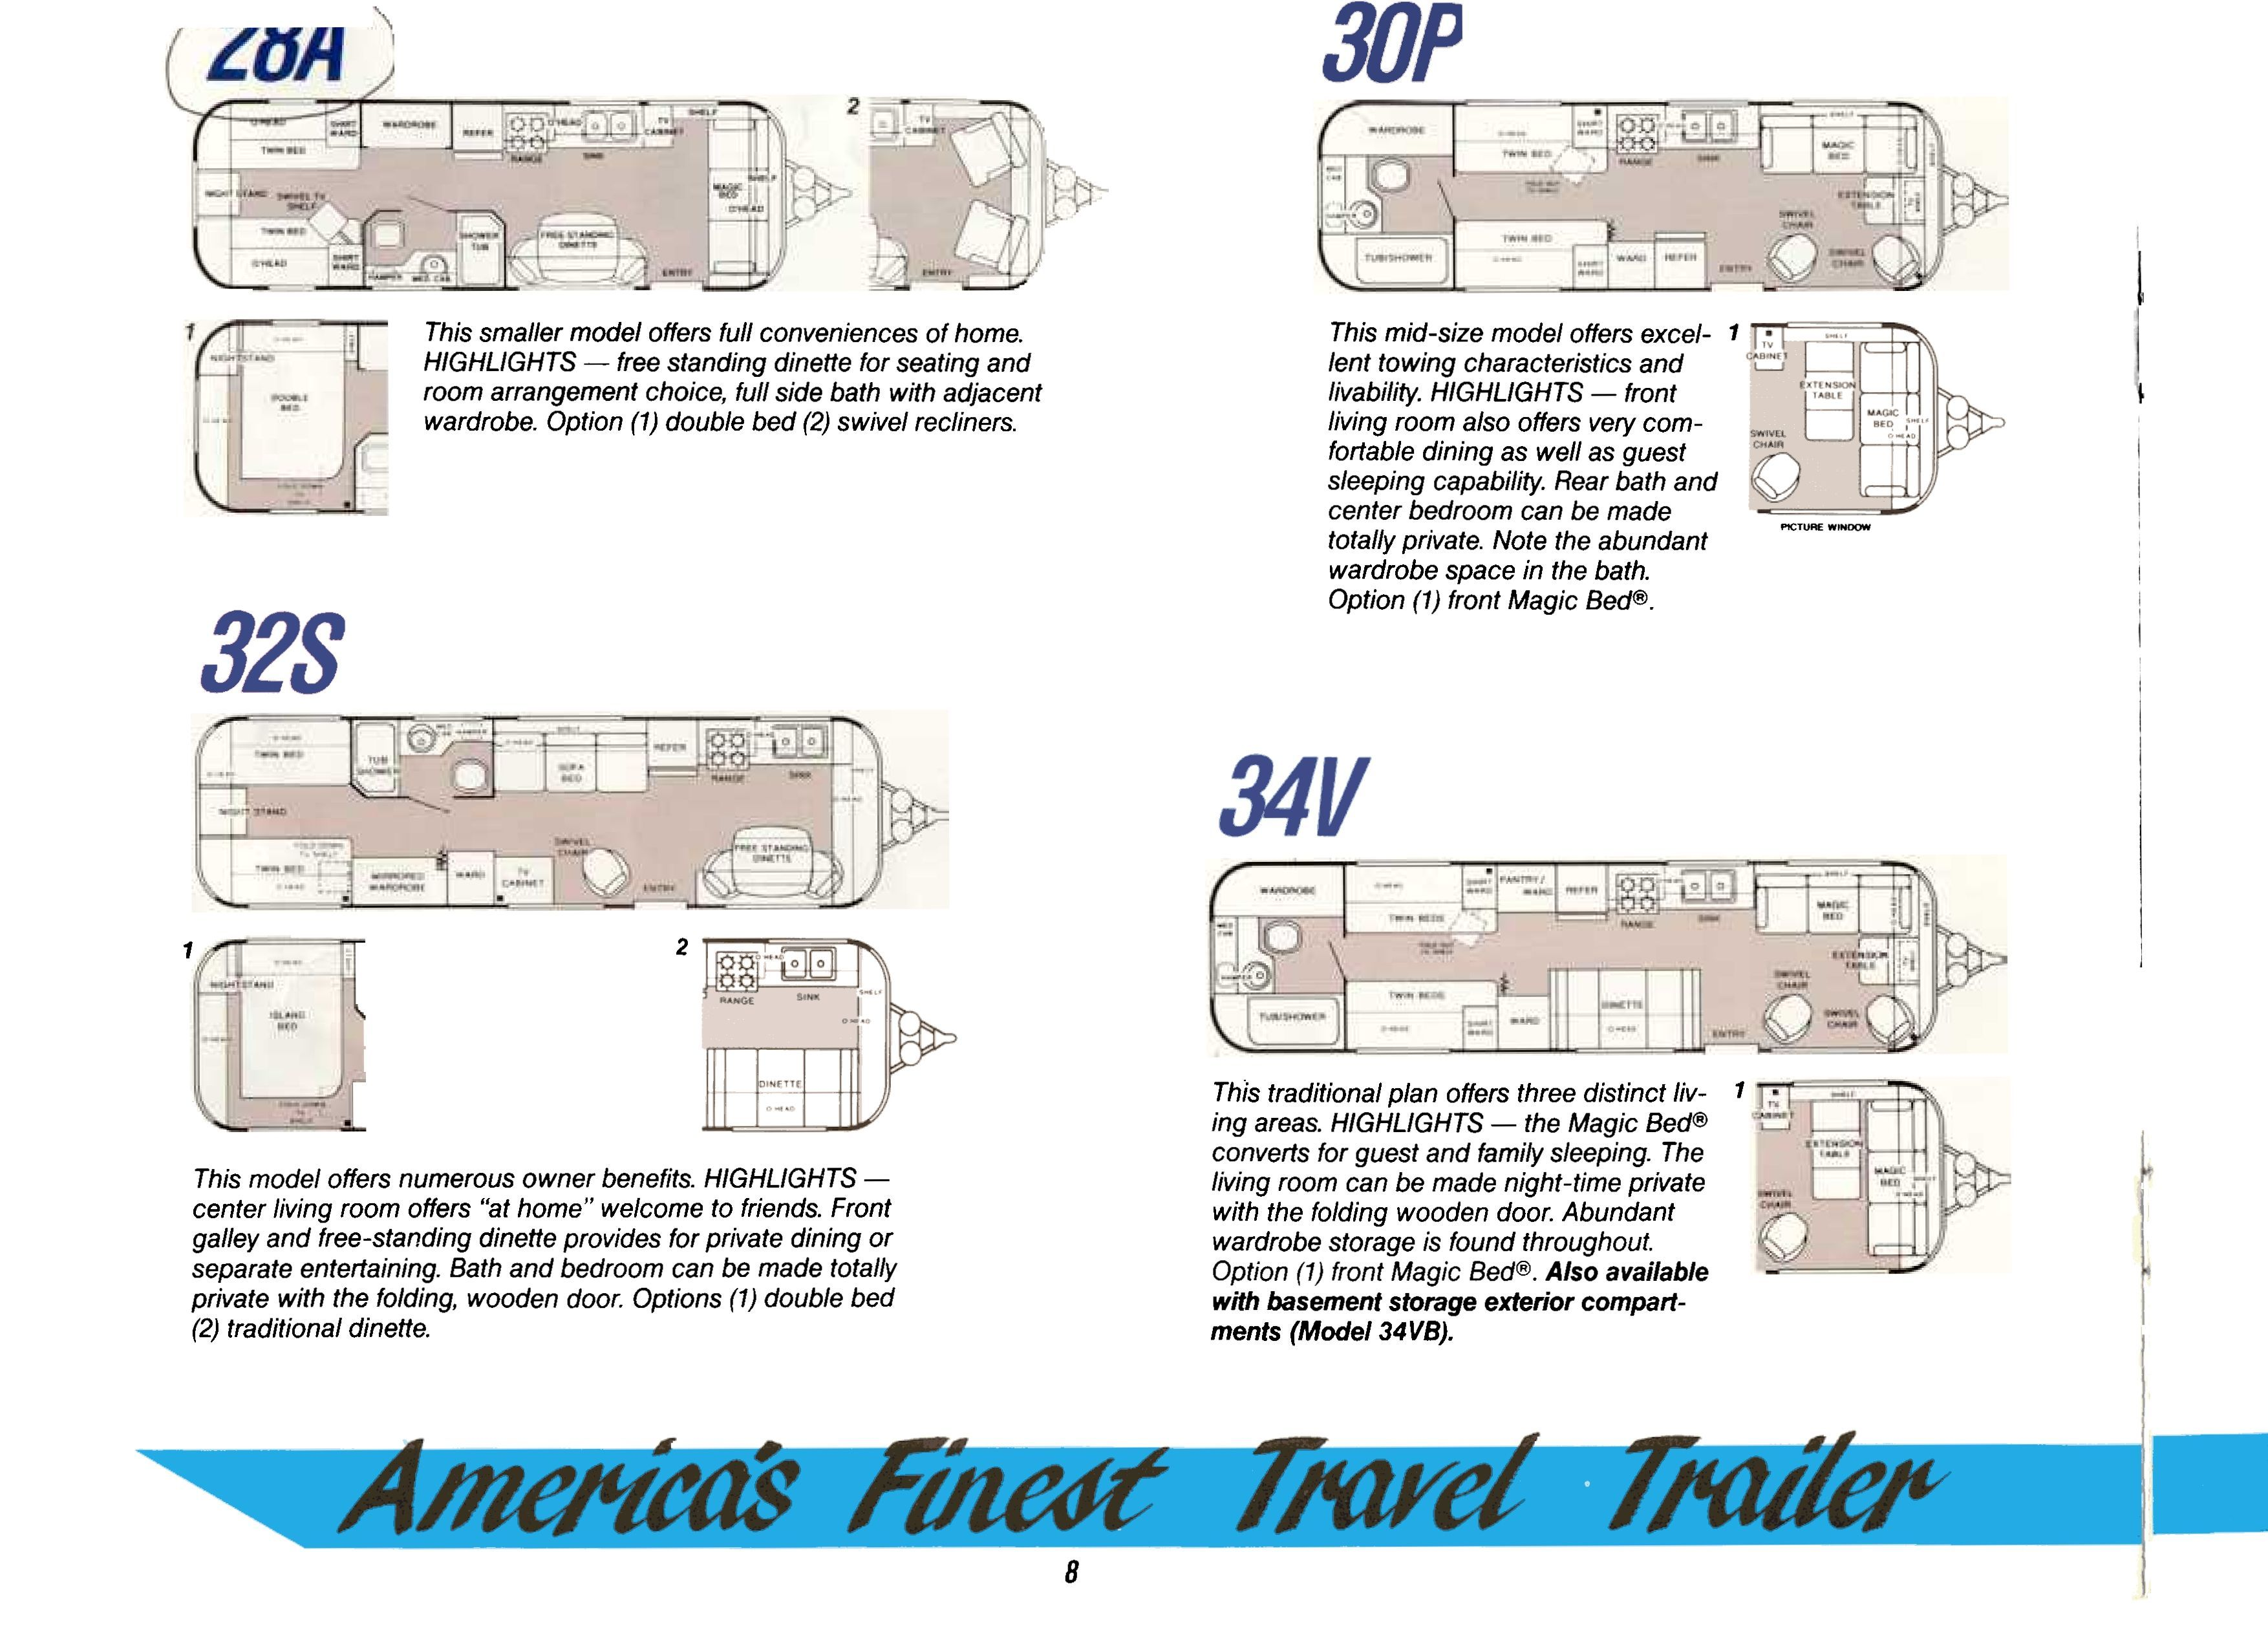 1973 airstream wiring diagram | Days spent camping are not subtracted from  one's total.